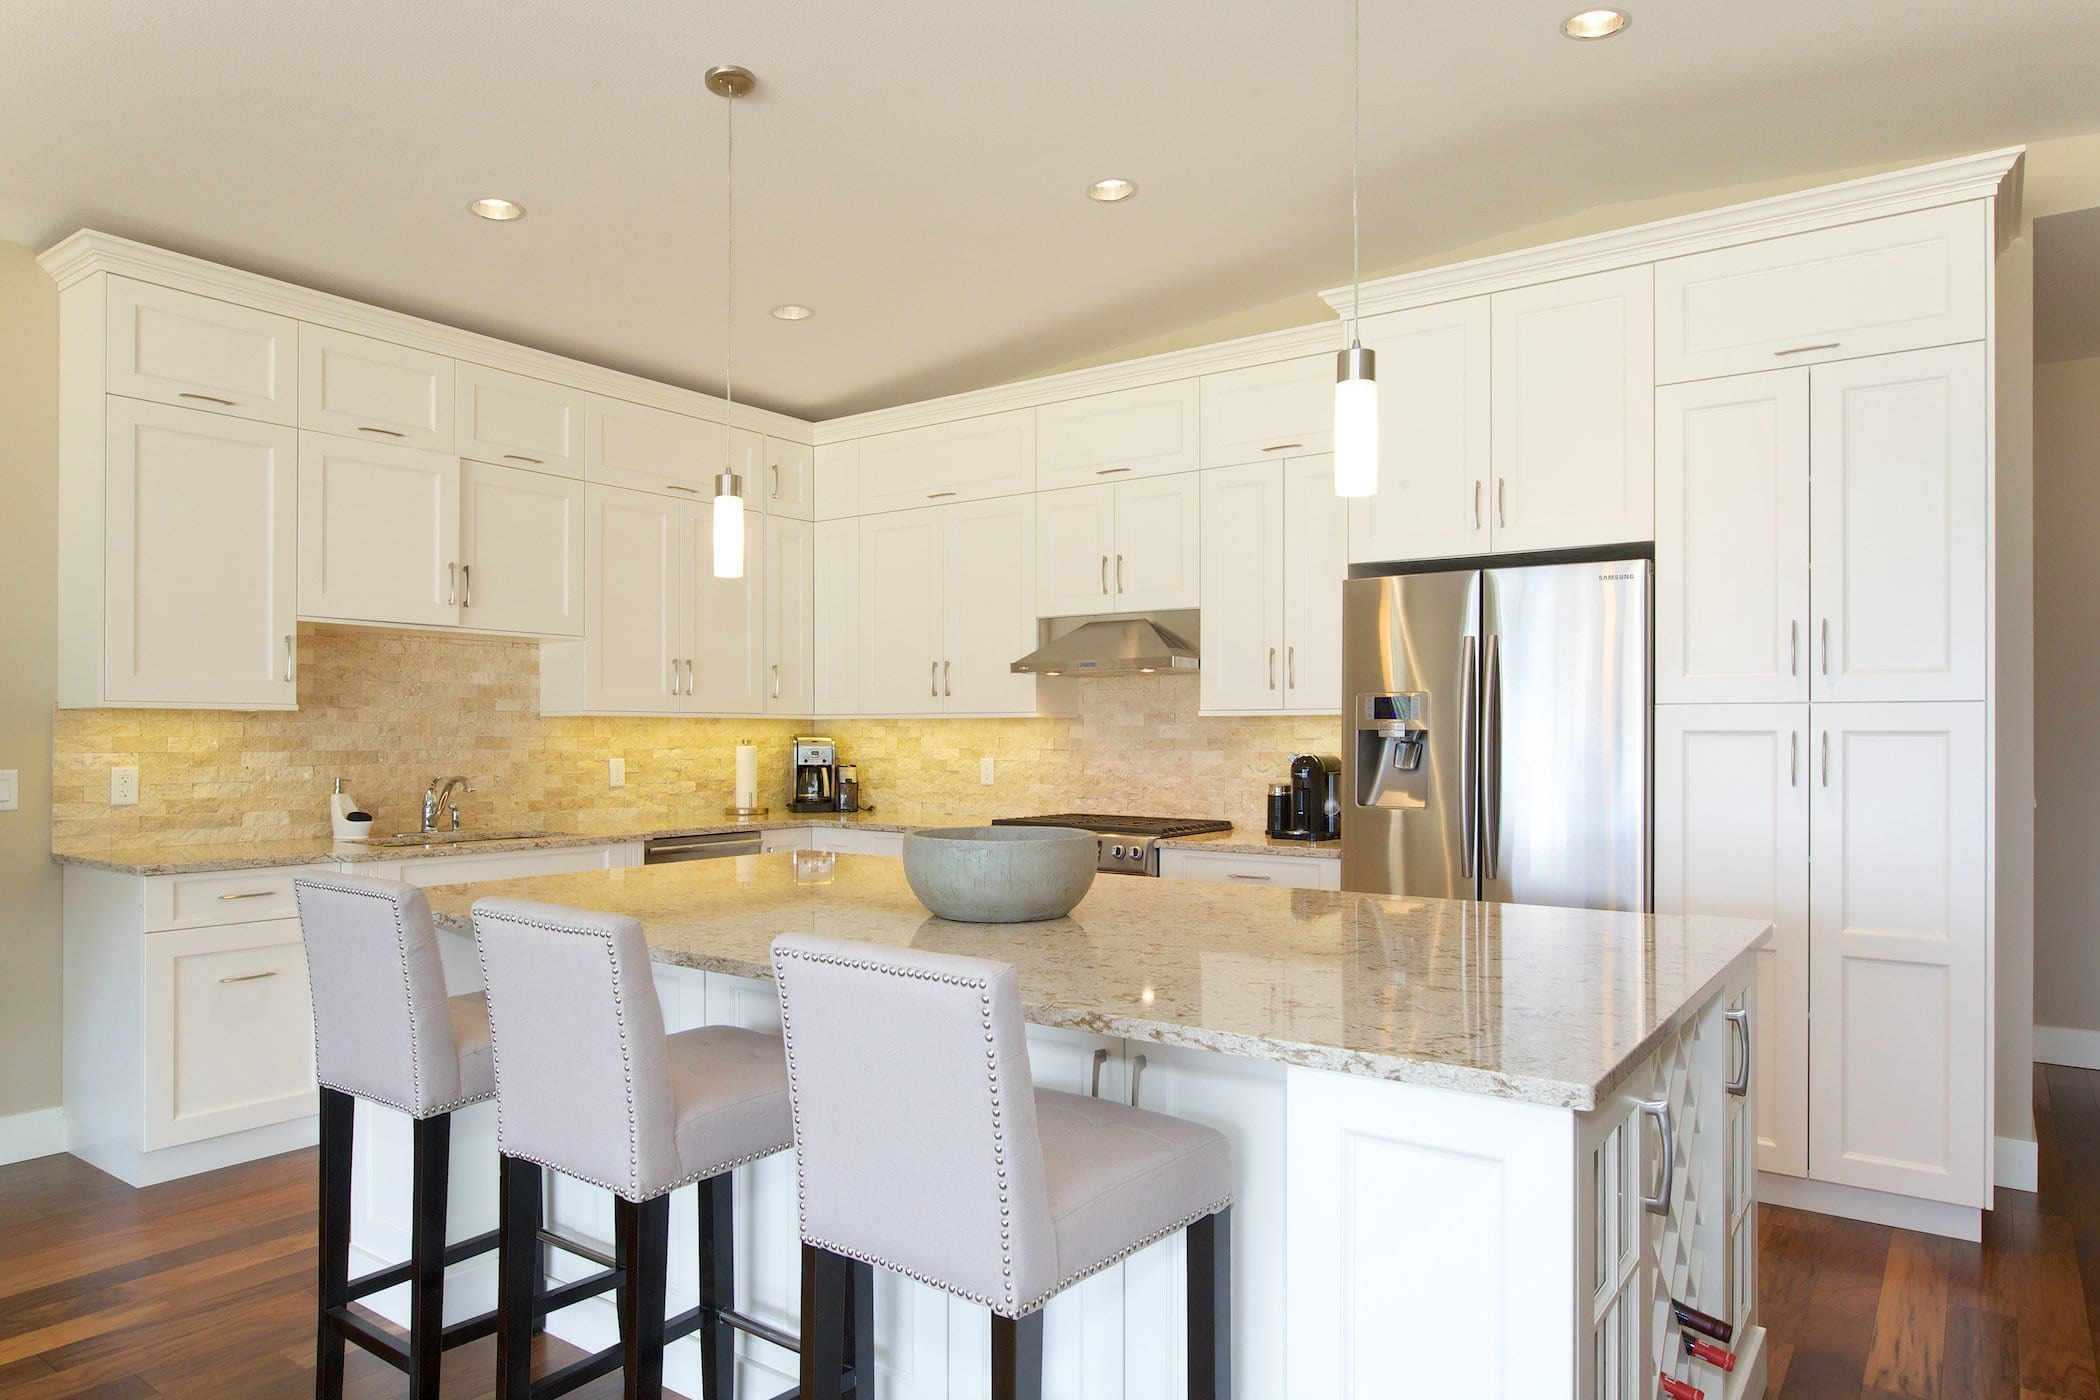 interior shot of west harbour home kitchen with white cabinetry bar chairs fridge and stove